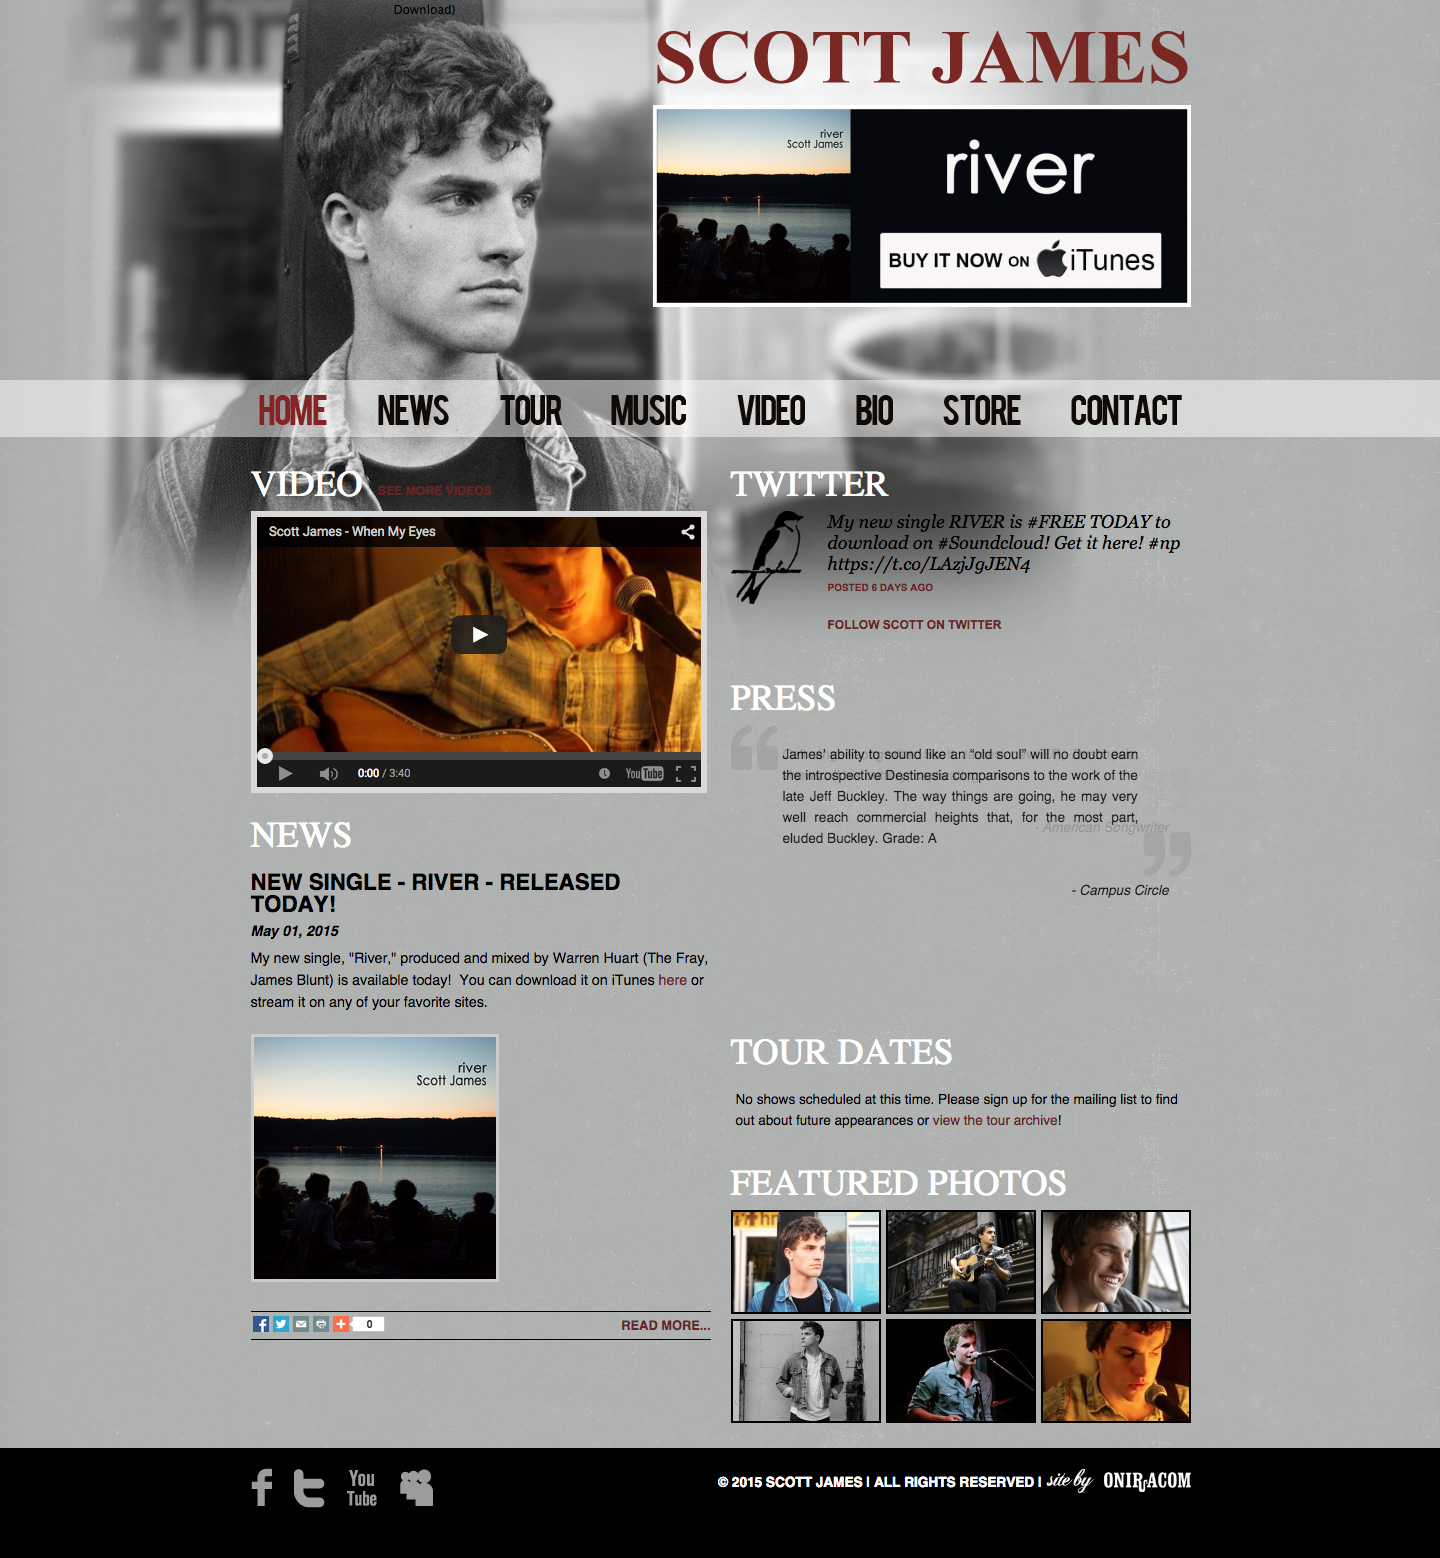 Scott James website built by Aquatic in San Francisco